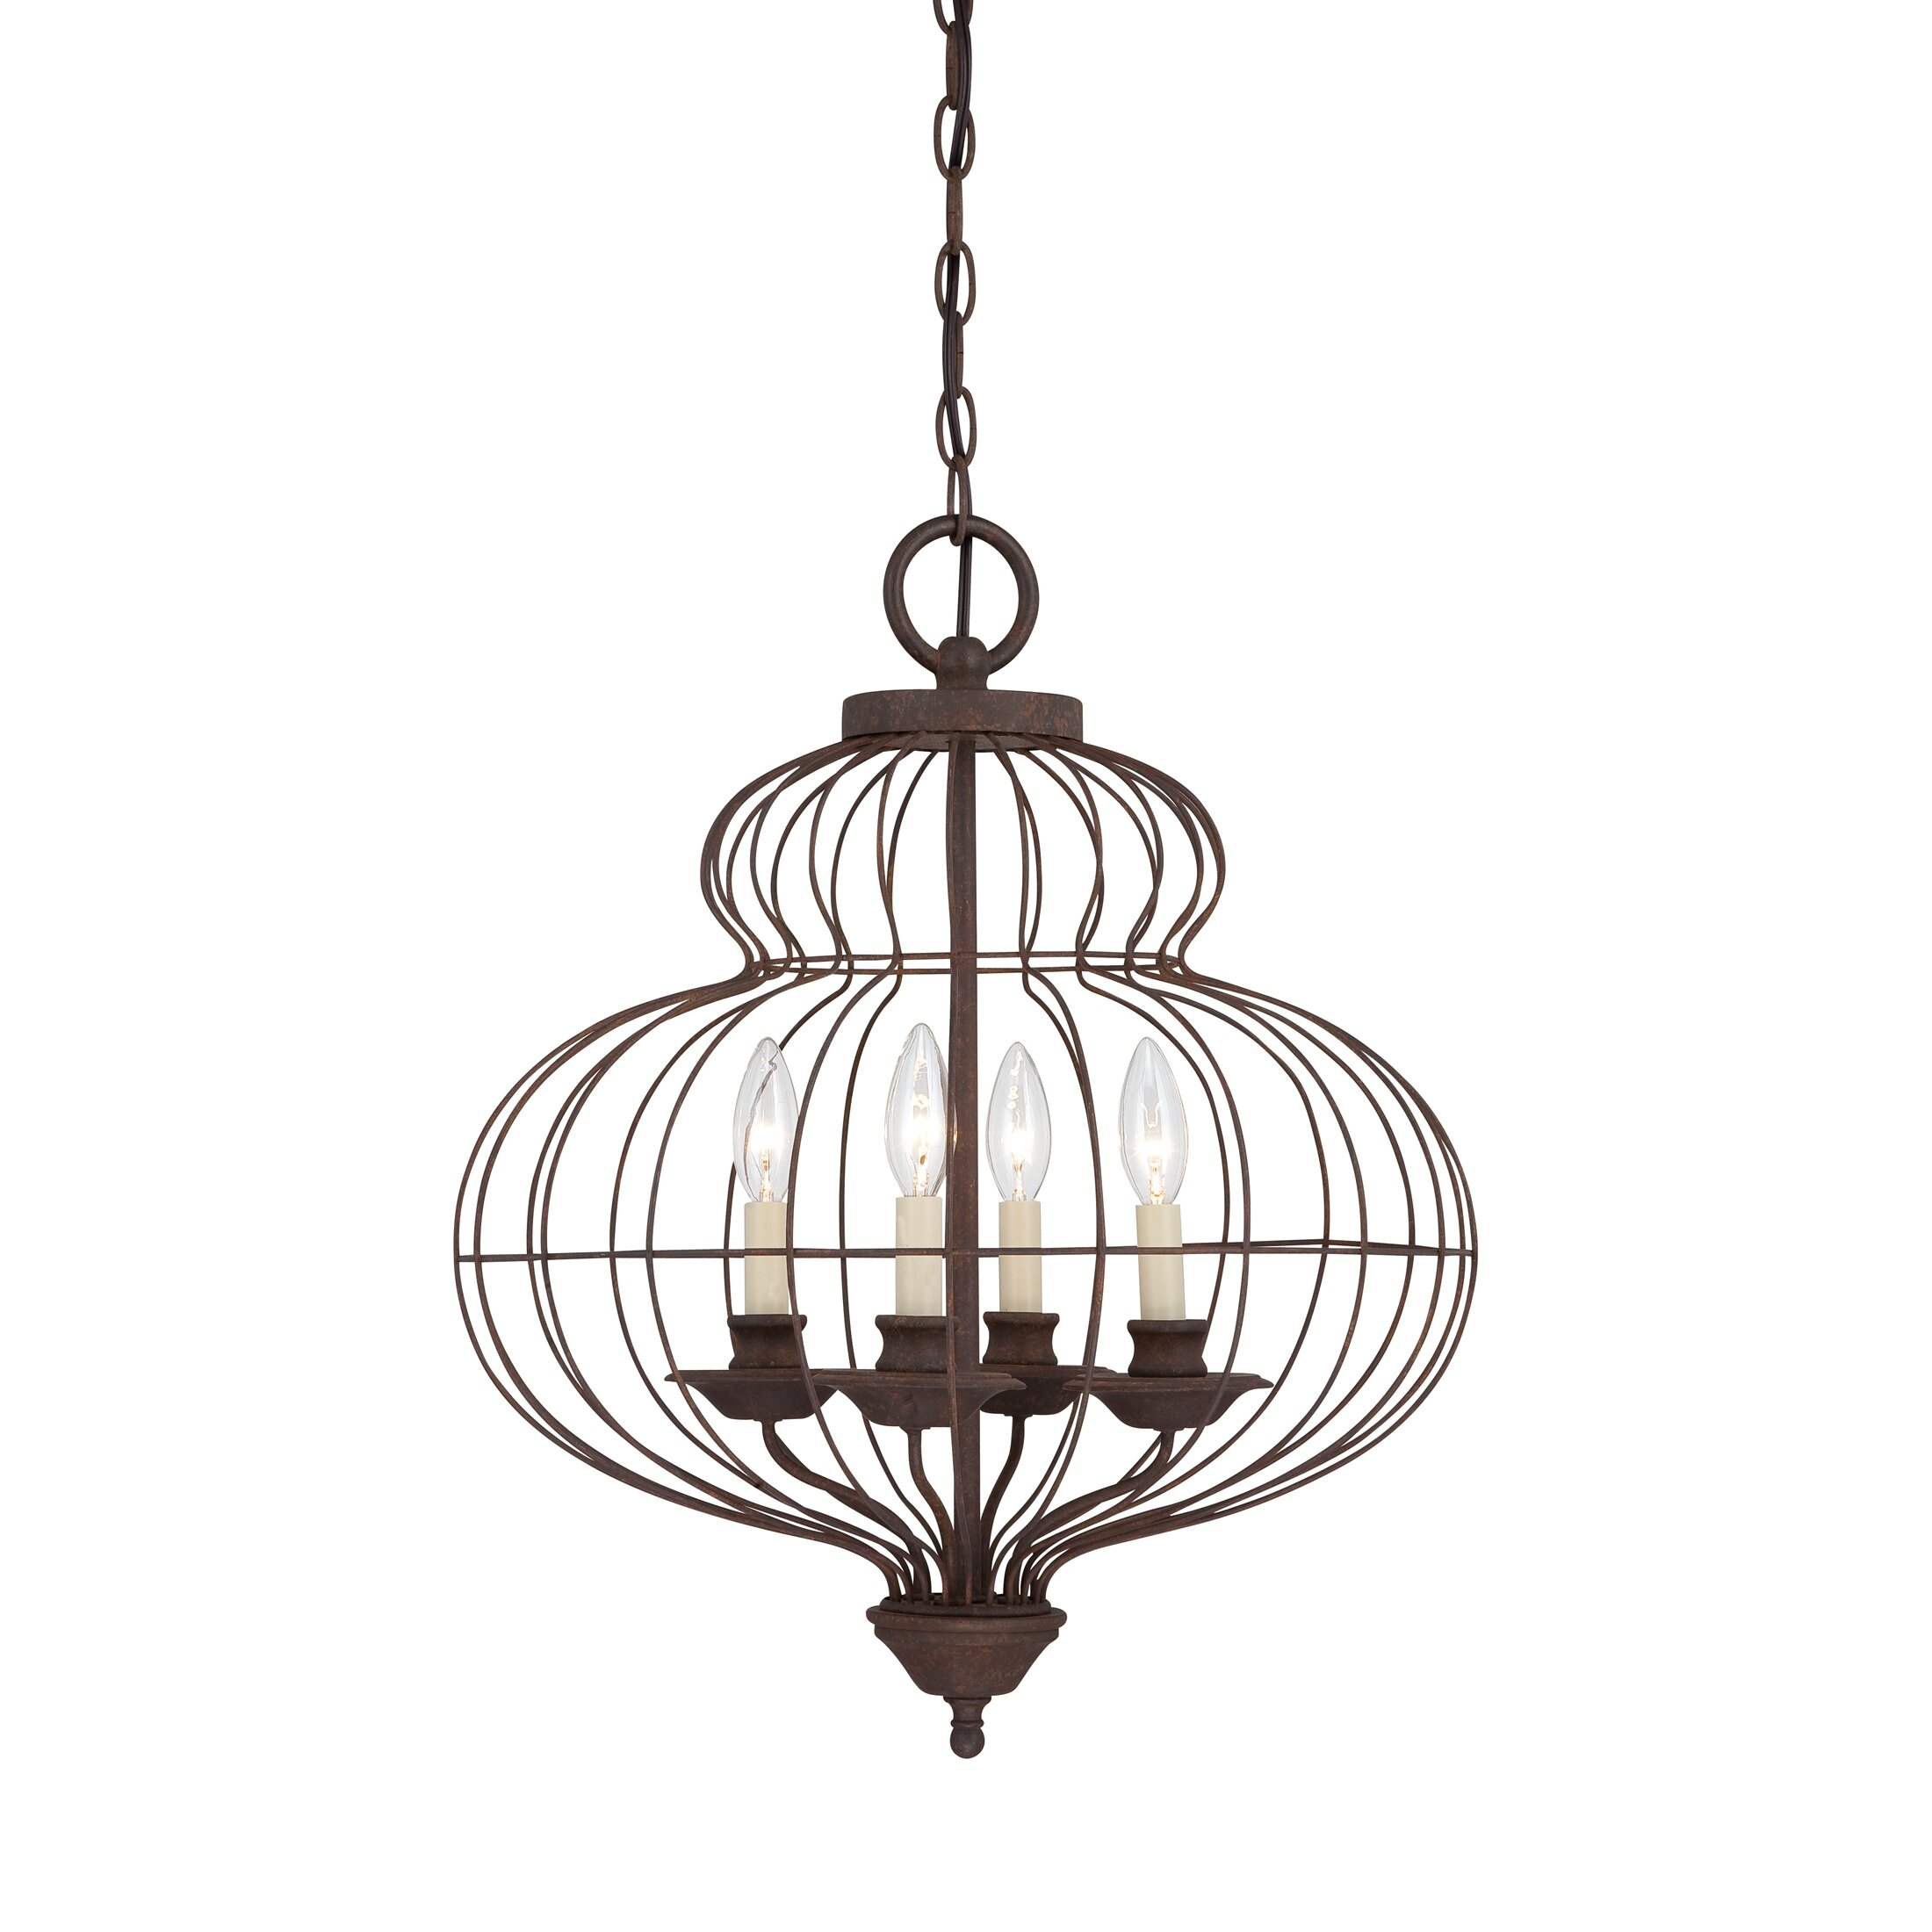 Amazing Lenox Chandelier Lamp Shades Images - Chandelier Designs ...